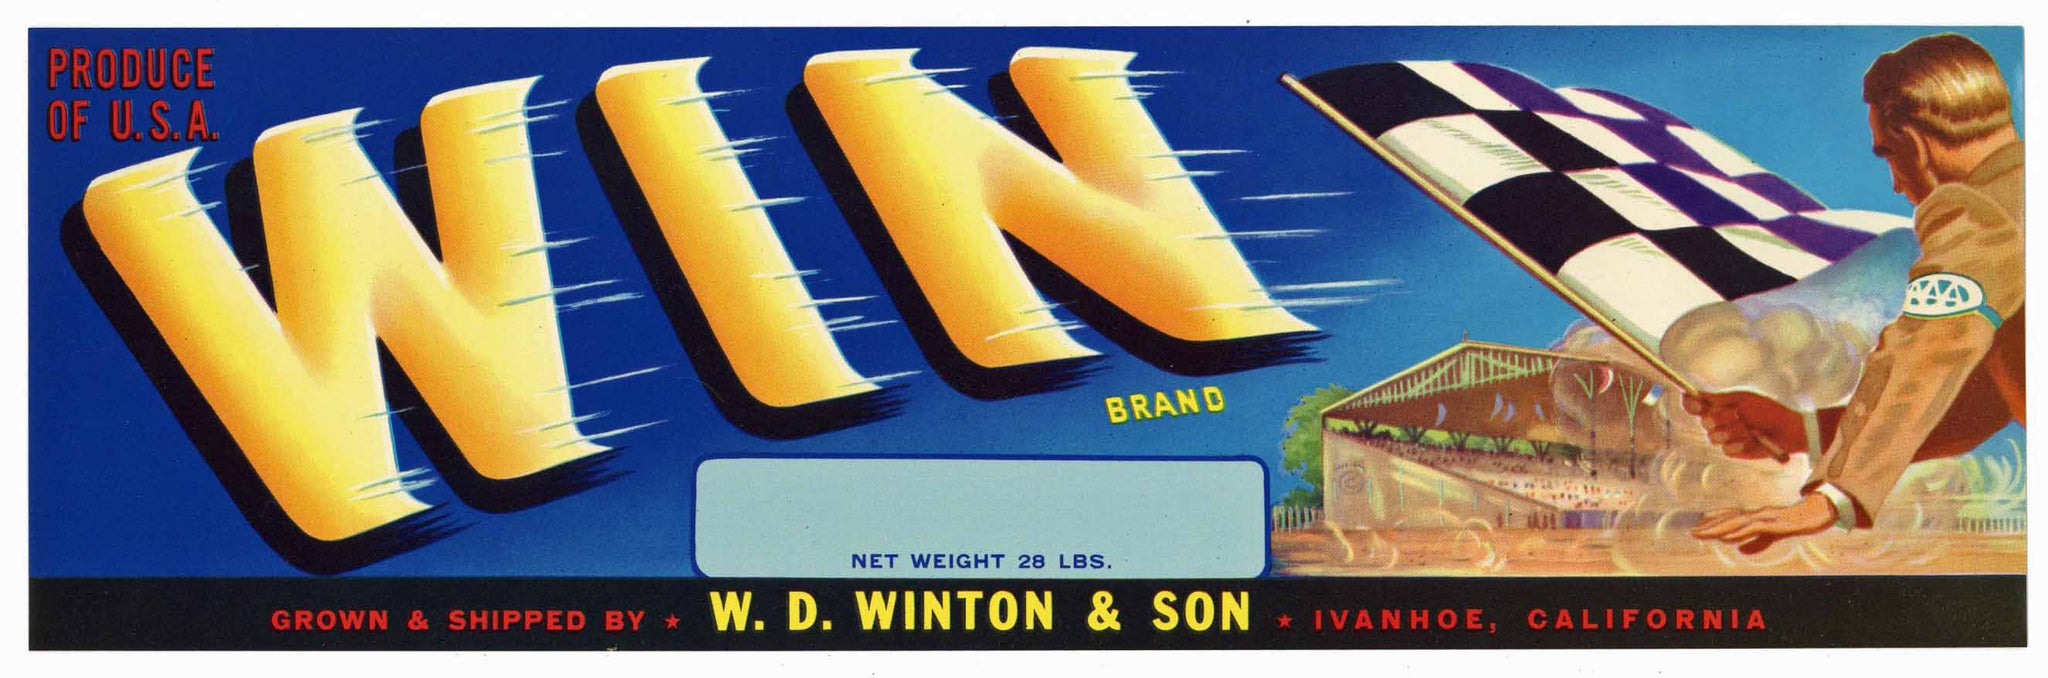 Win Brand Vintage Ivanhoe Fruit Crate Label